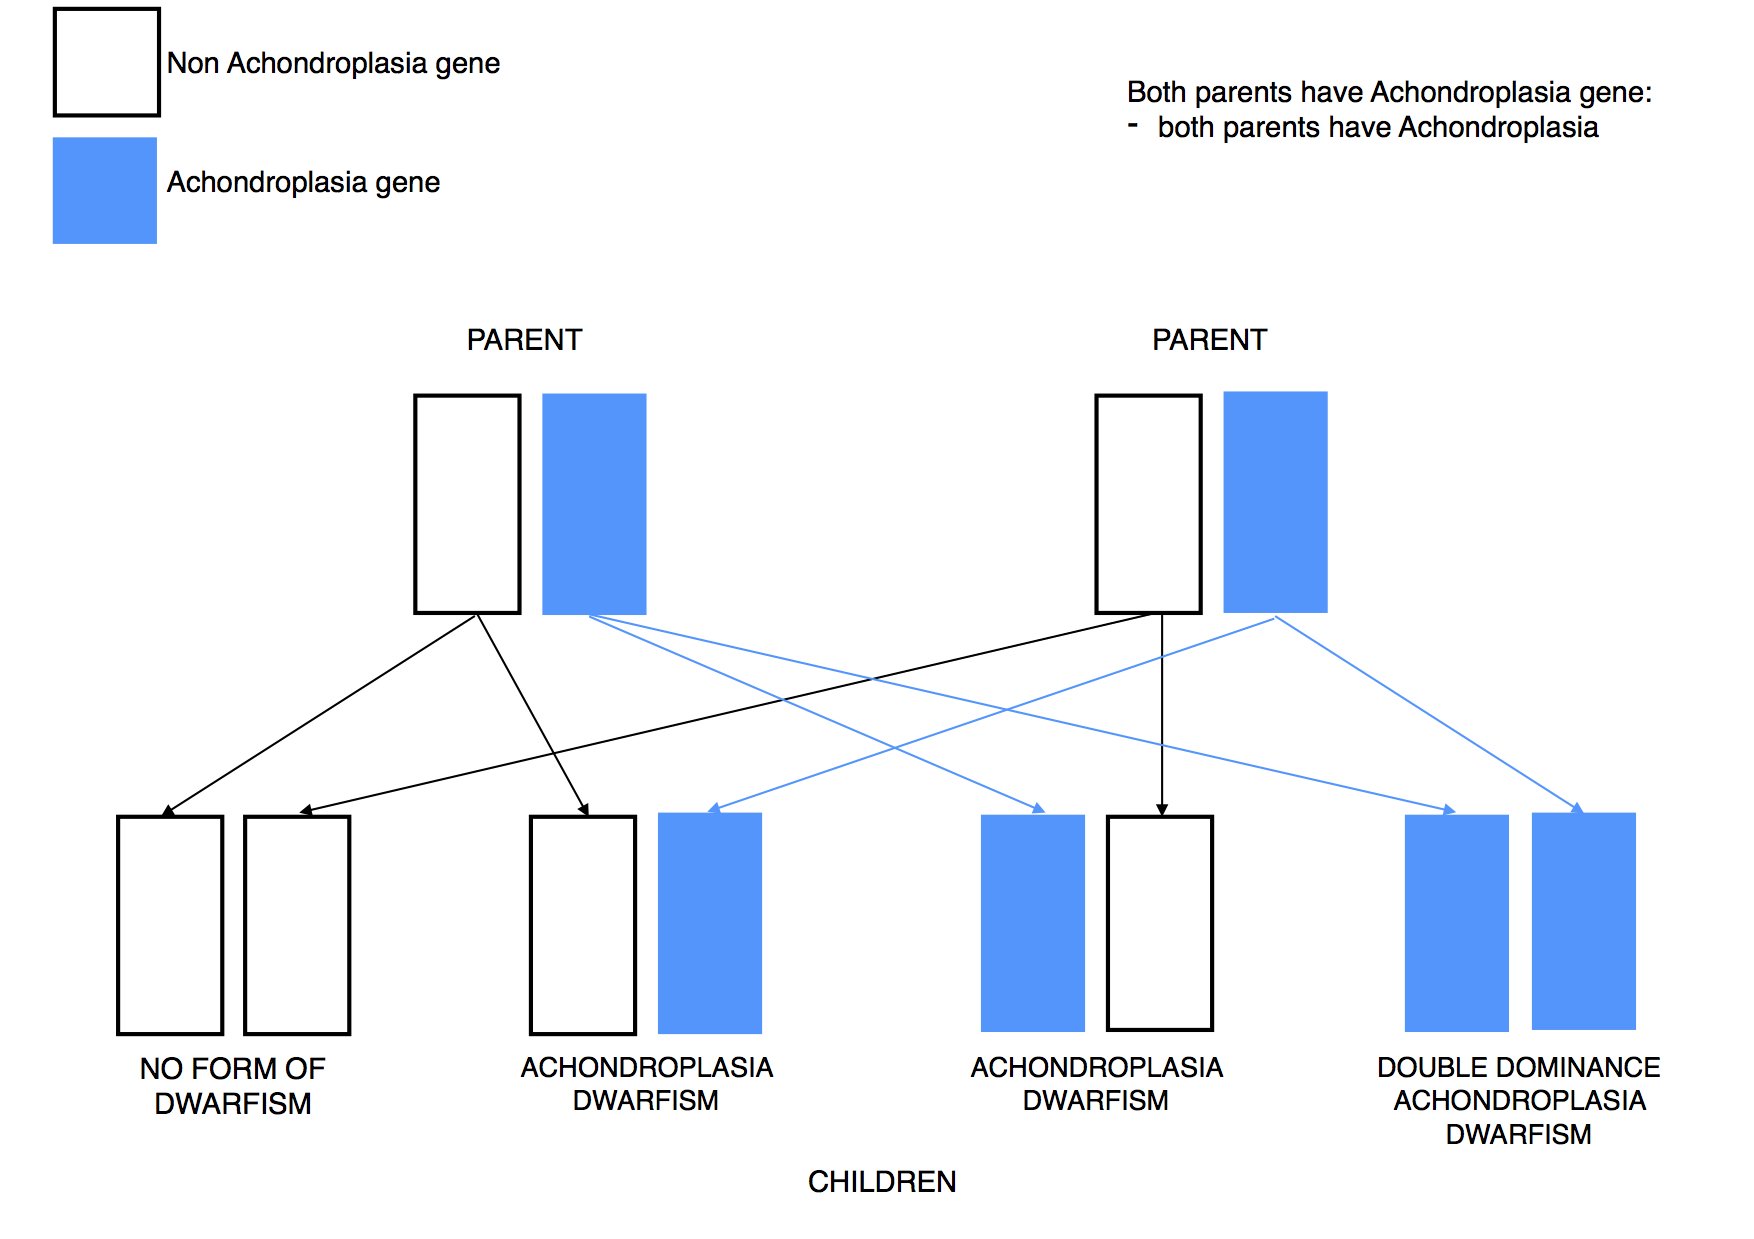 Dwarfism Genetics Achon 2 parents affected dominant